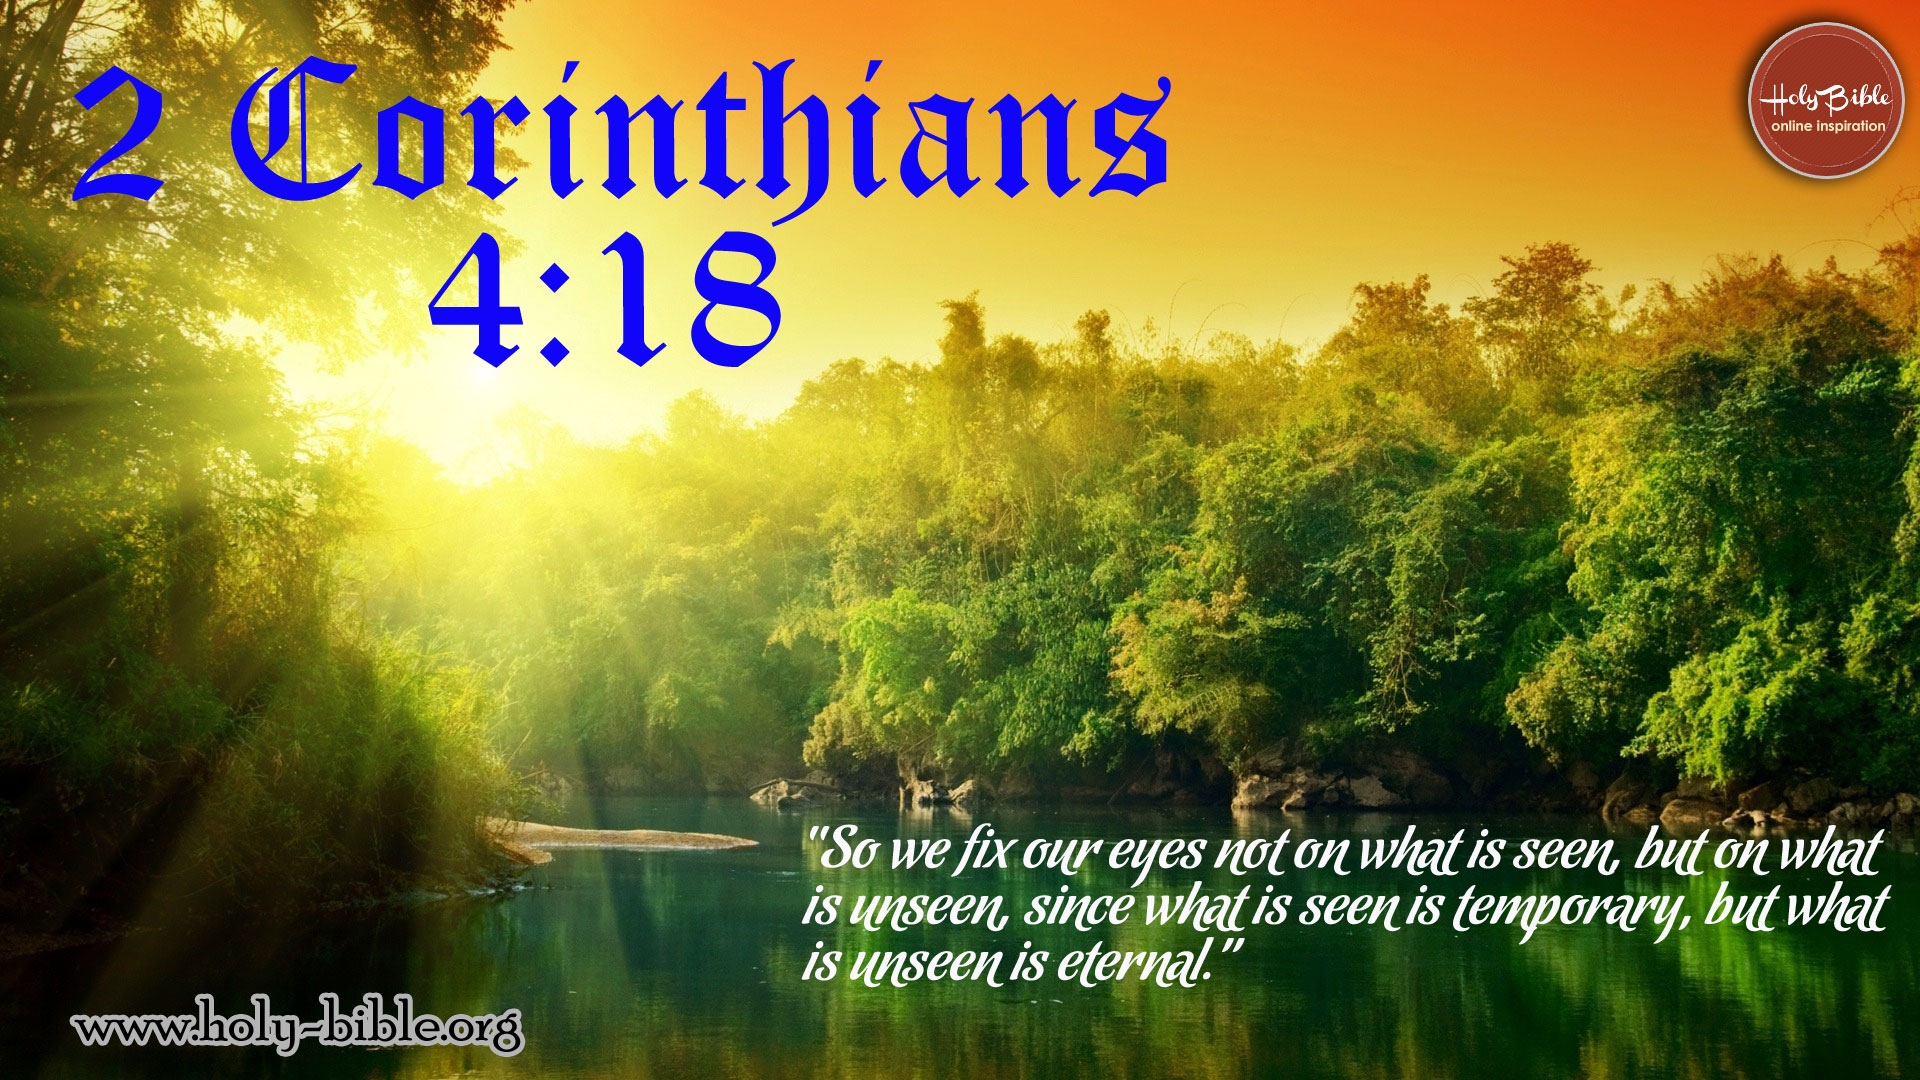 Bible Verse of the day - 2 Corinthians 4:18